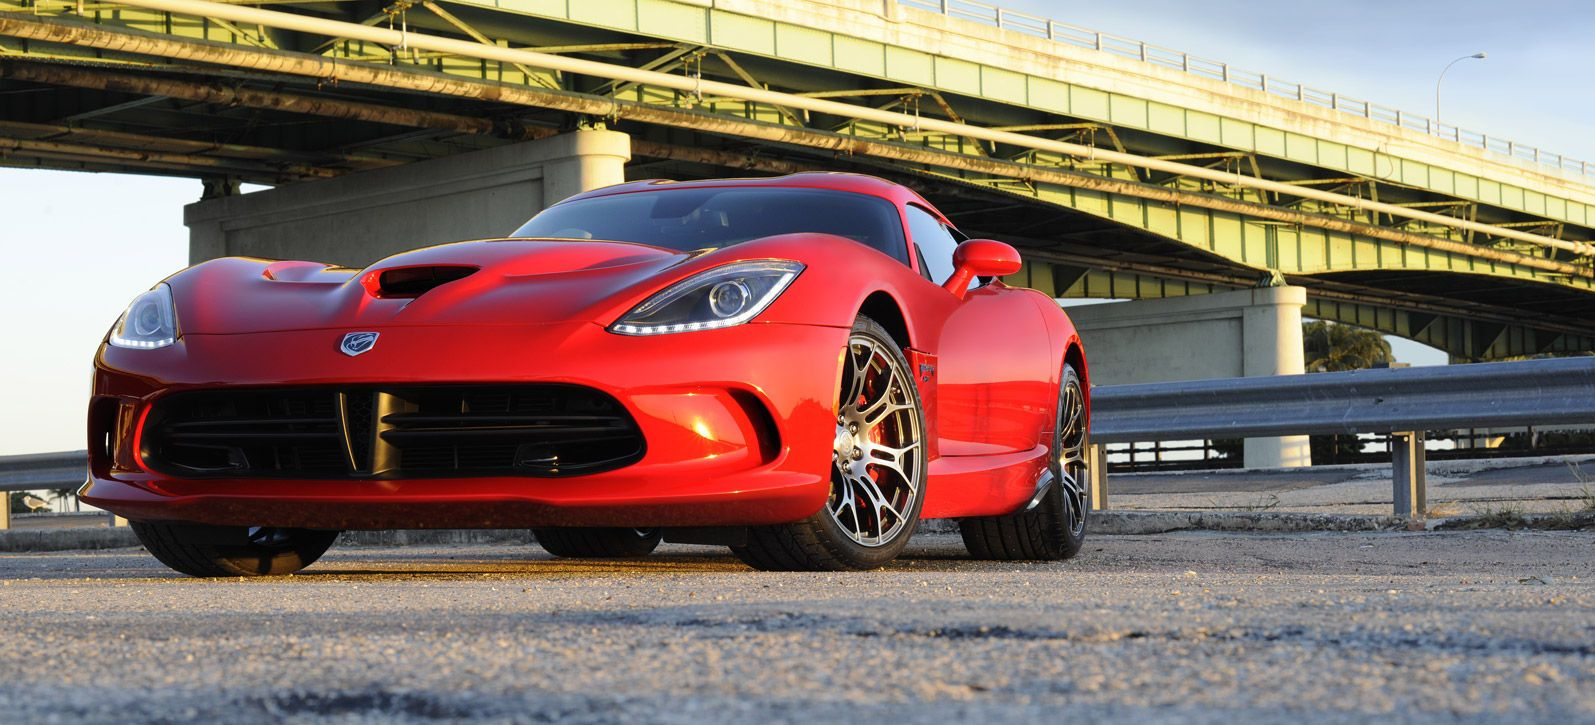 Dodge Viper Srt The Look Of The Dodge Viper Srt Is Unforgettable And Its Performance And Reliability Are Similarly Premium Dodge Viper Sports Car Sports Cars